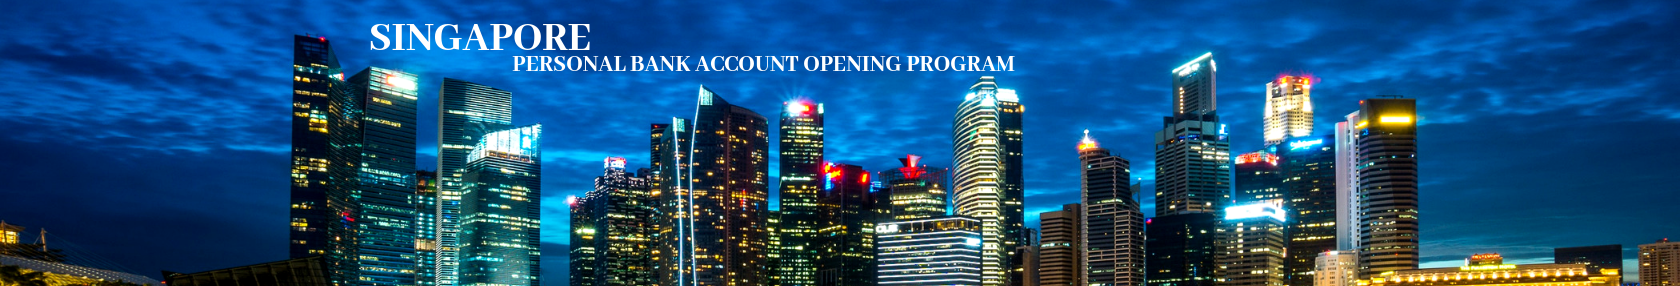 Singapore, Personal Account Opening